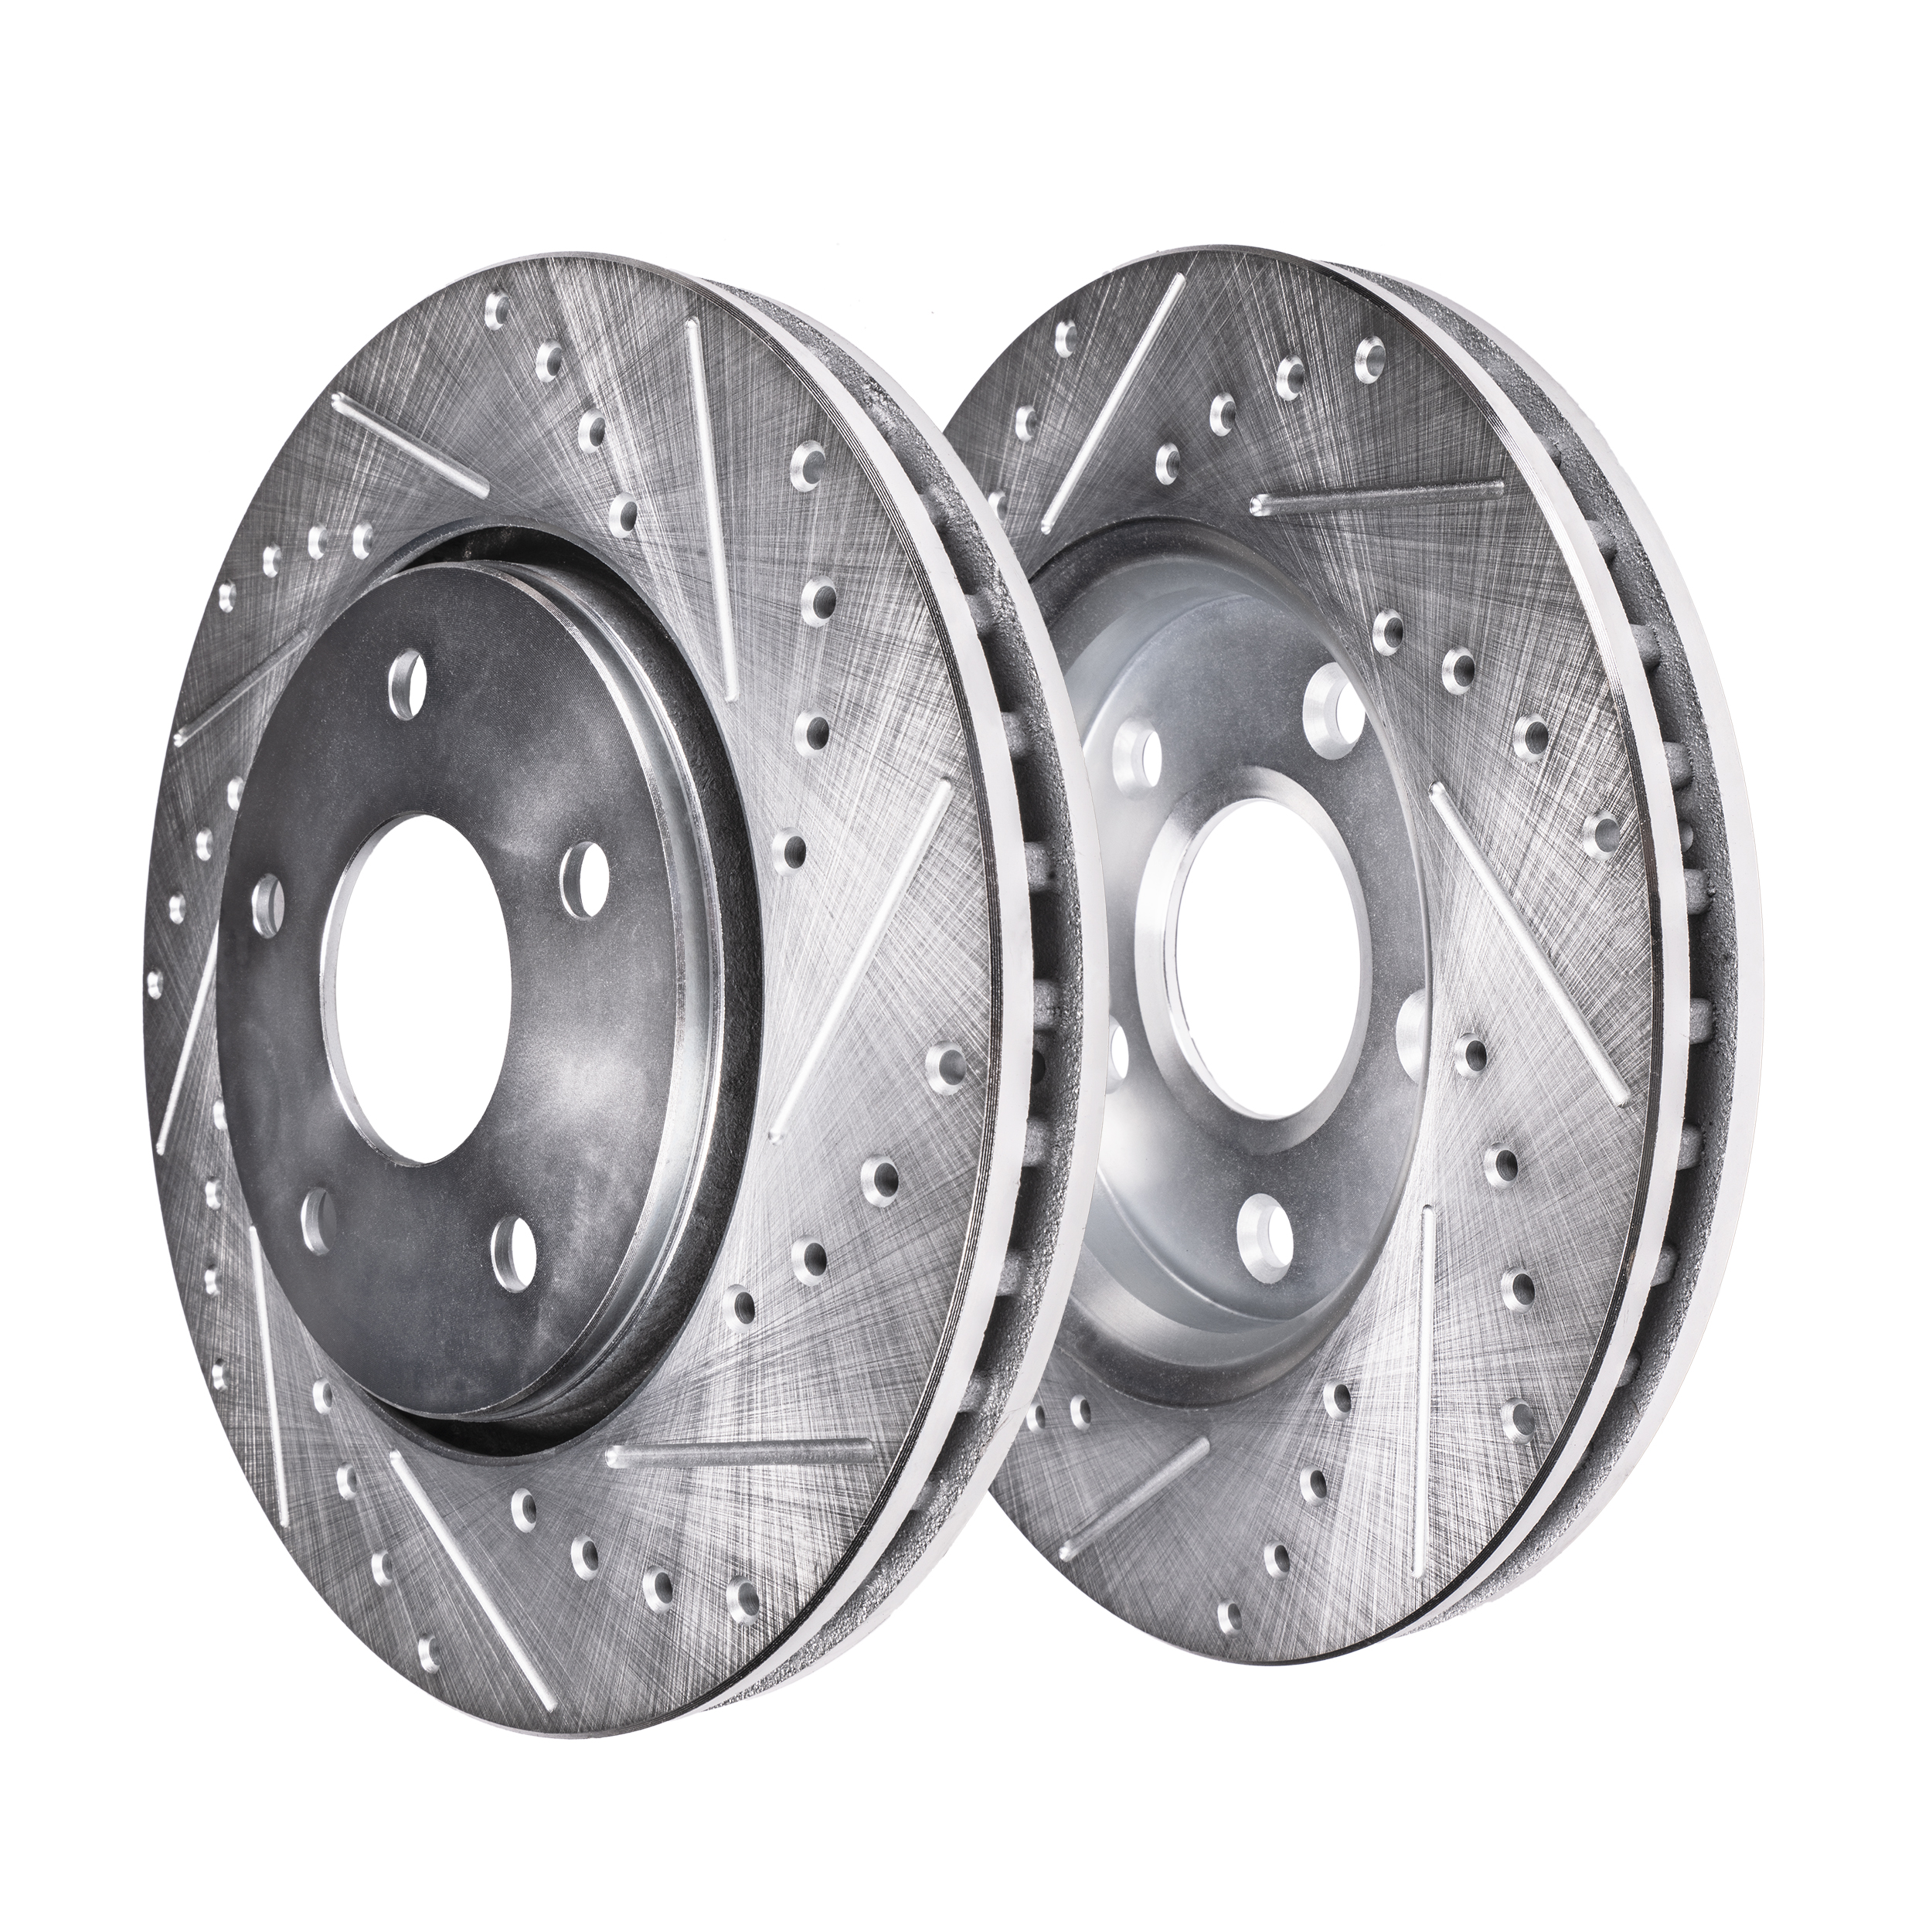 06 Fit Chrysler Town/&Country w//Rear Disc Slotted Drilled Rotor w//Ceramic Pads F